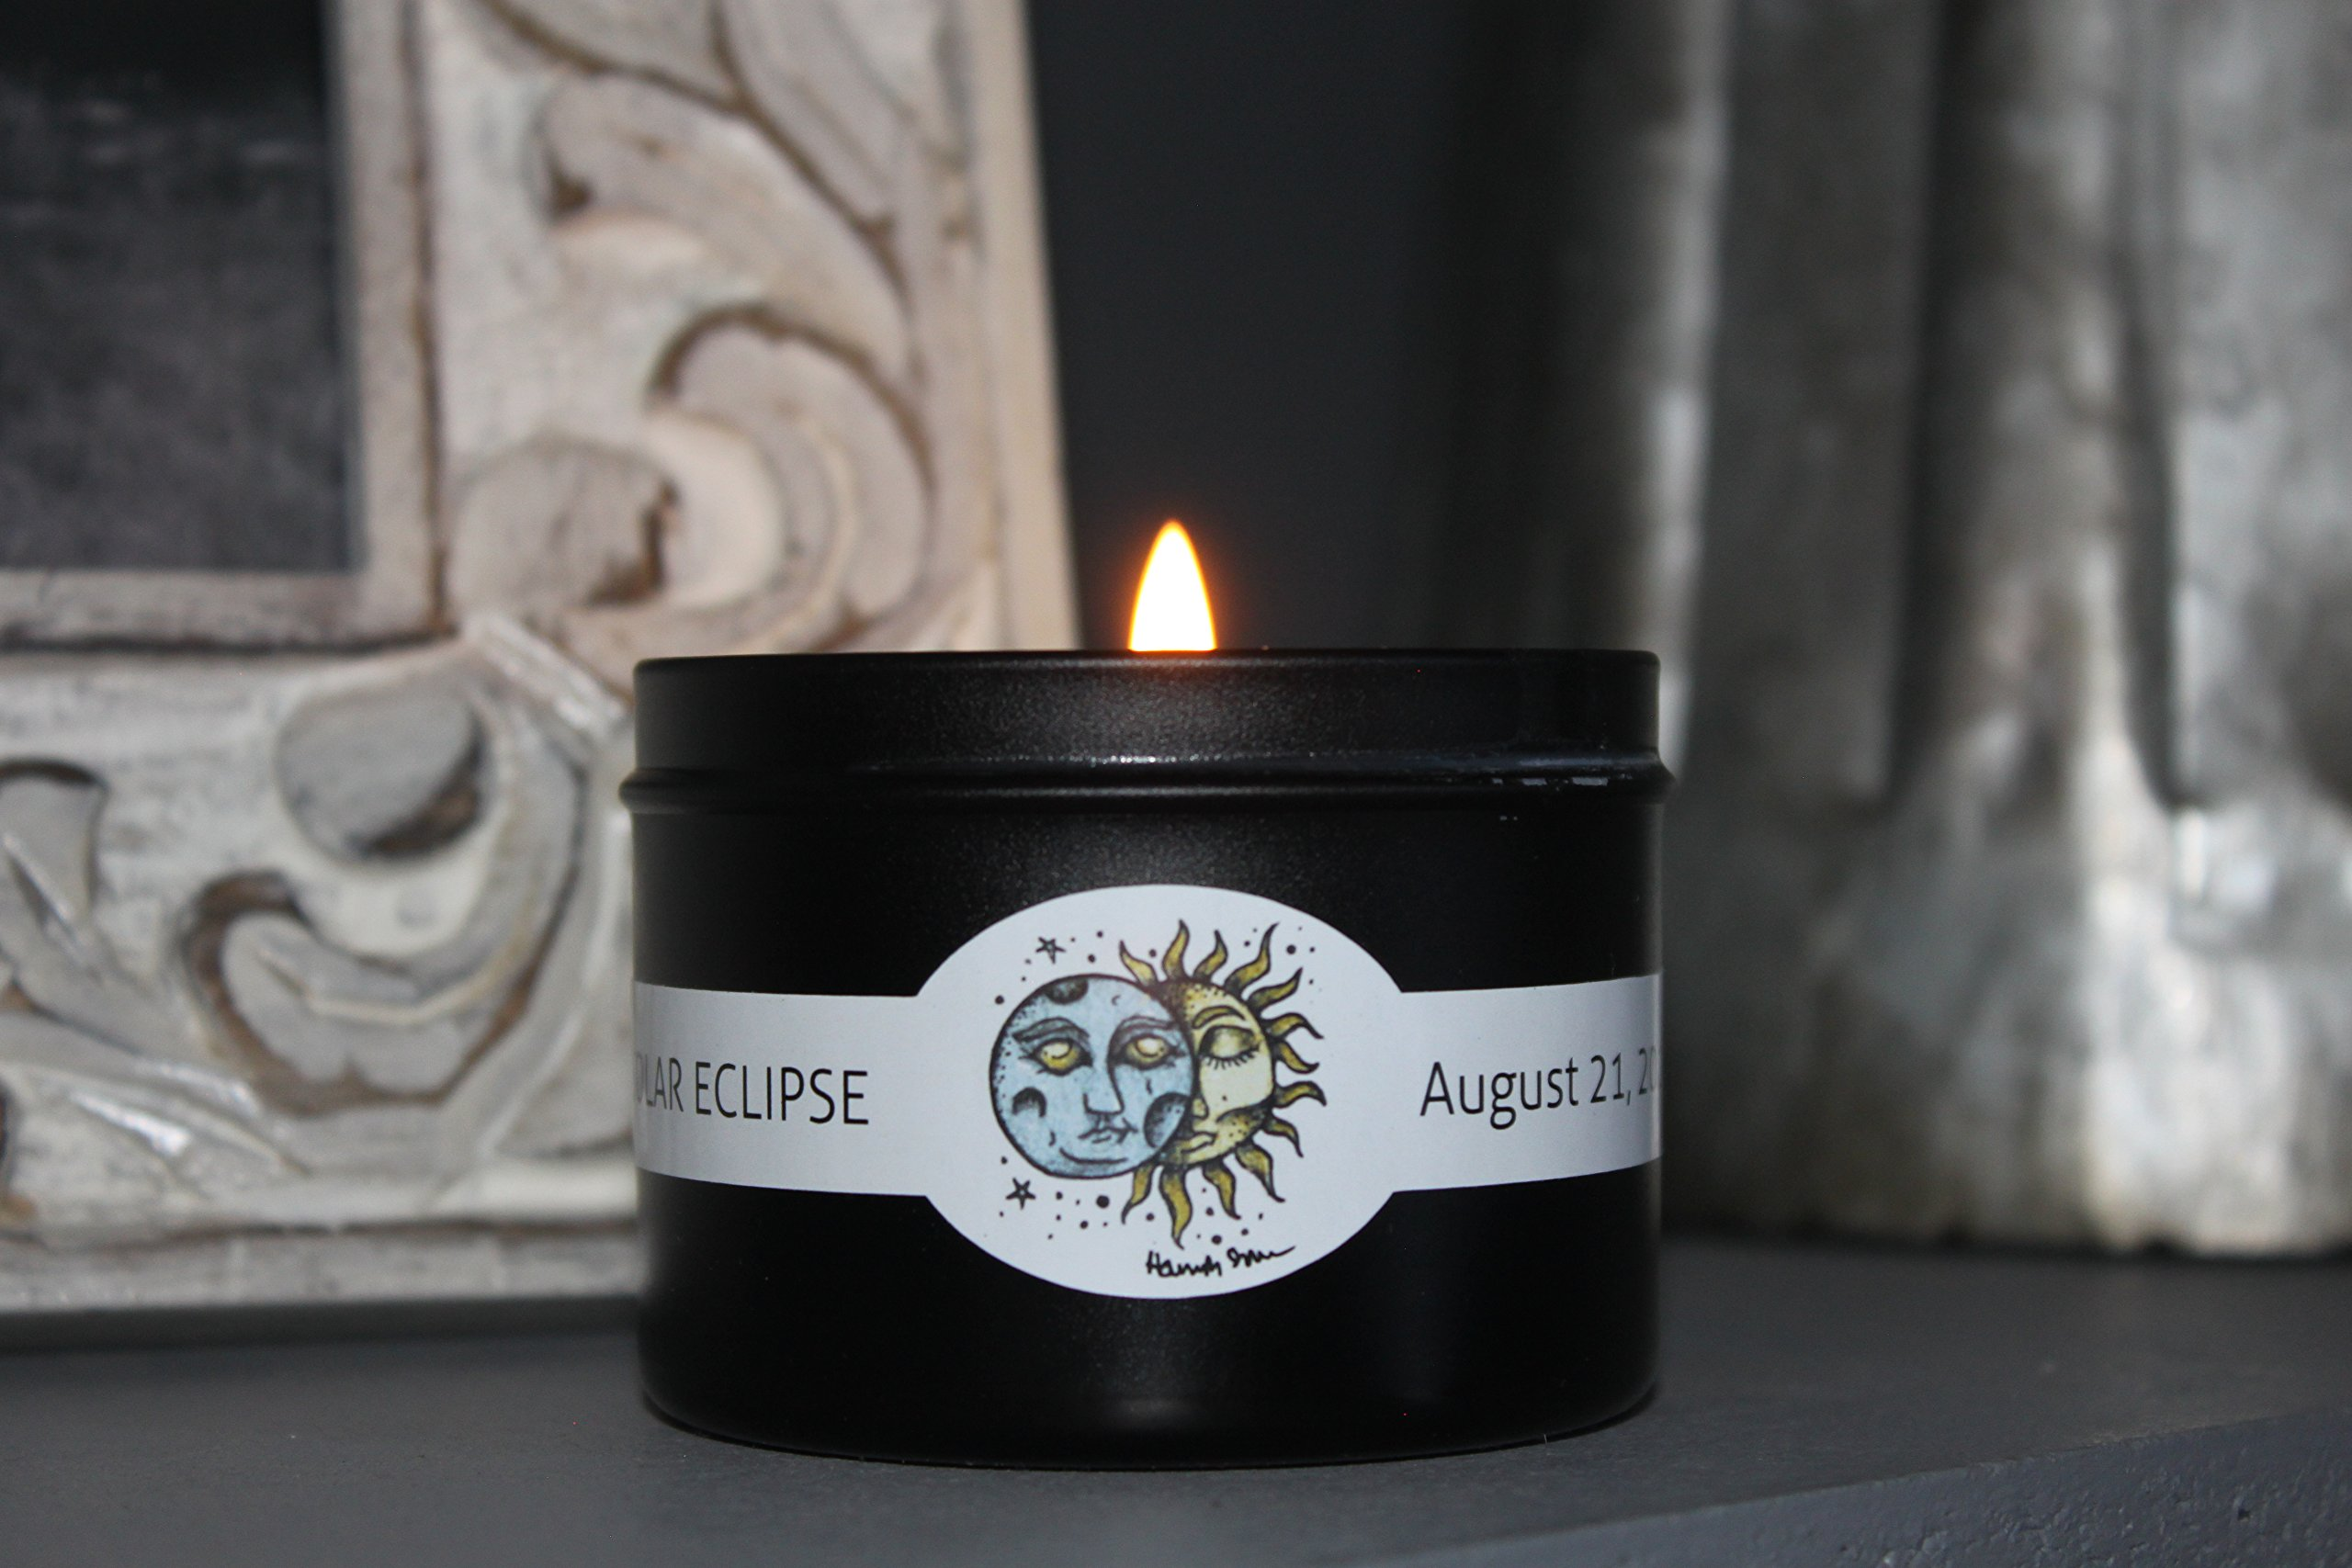 Collectors Edition// Solar Eclipse 6 oz. Black Travel Tin Soy Candle- Pacific Rain Scent- Artisan Made in Bend, OR, USA by Broken Top Candle Company